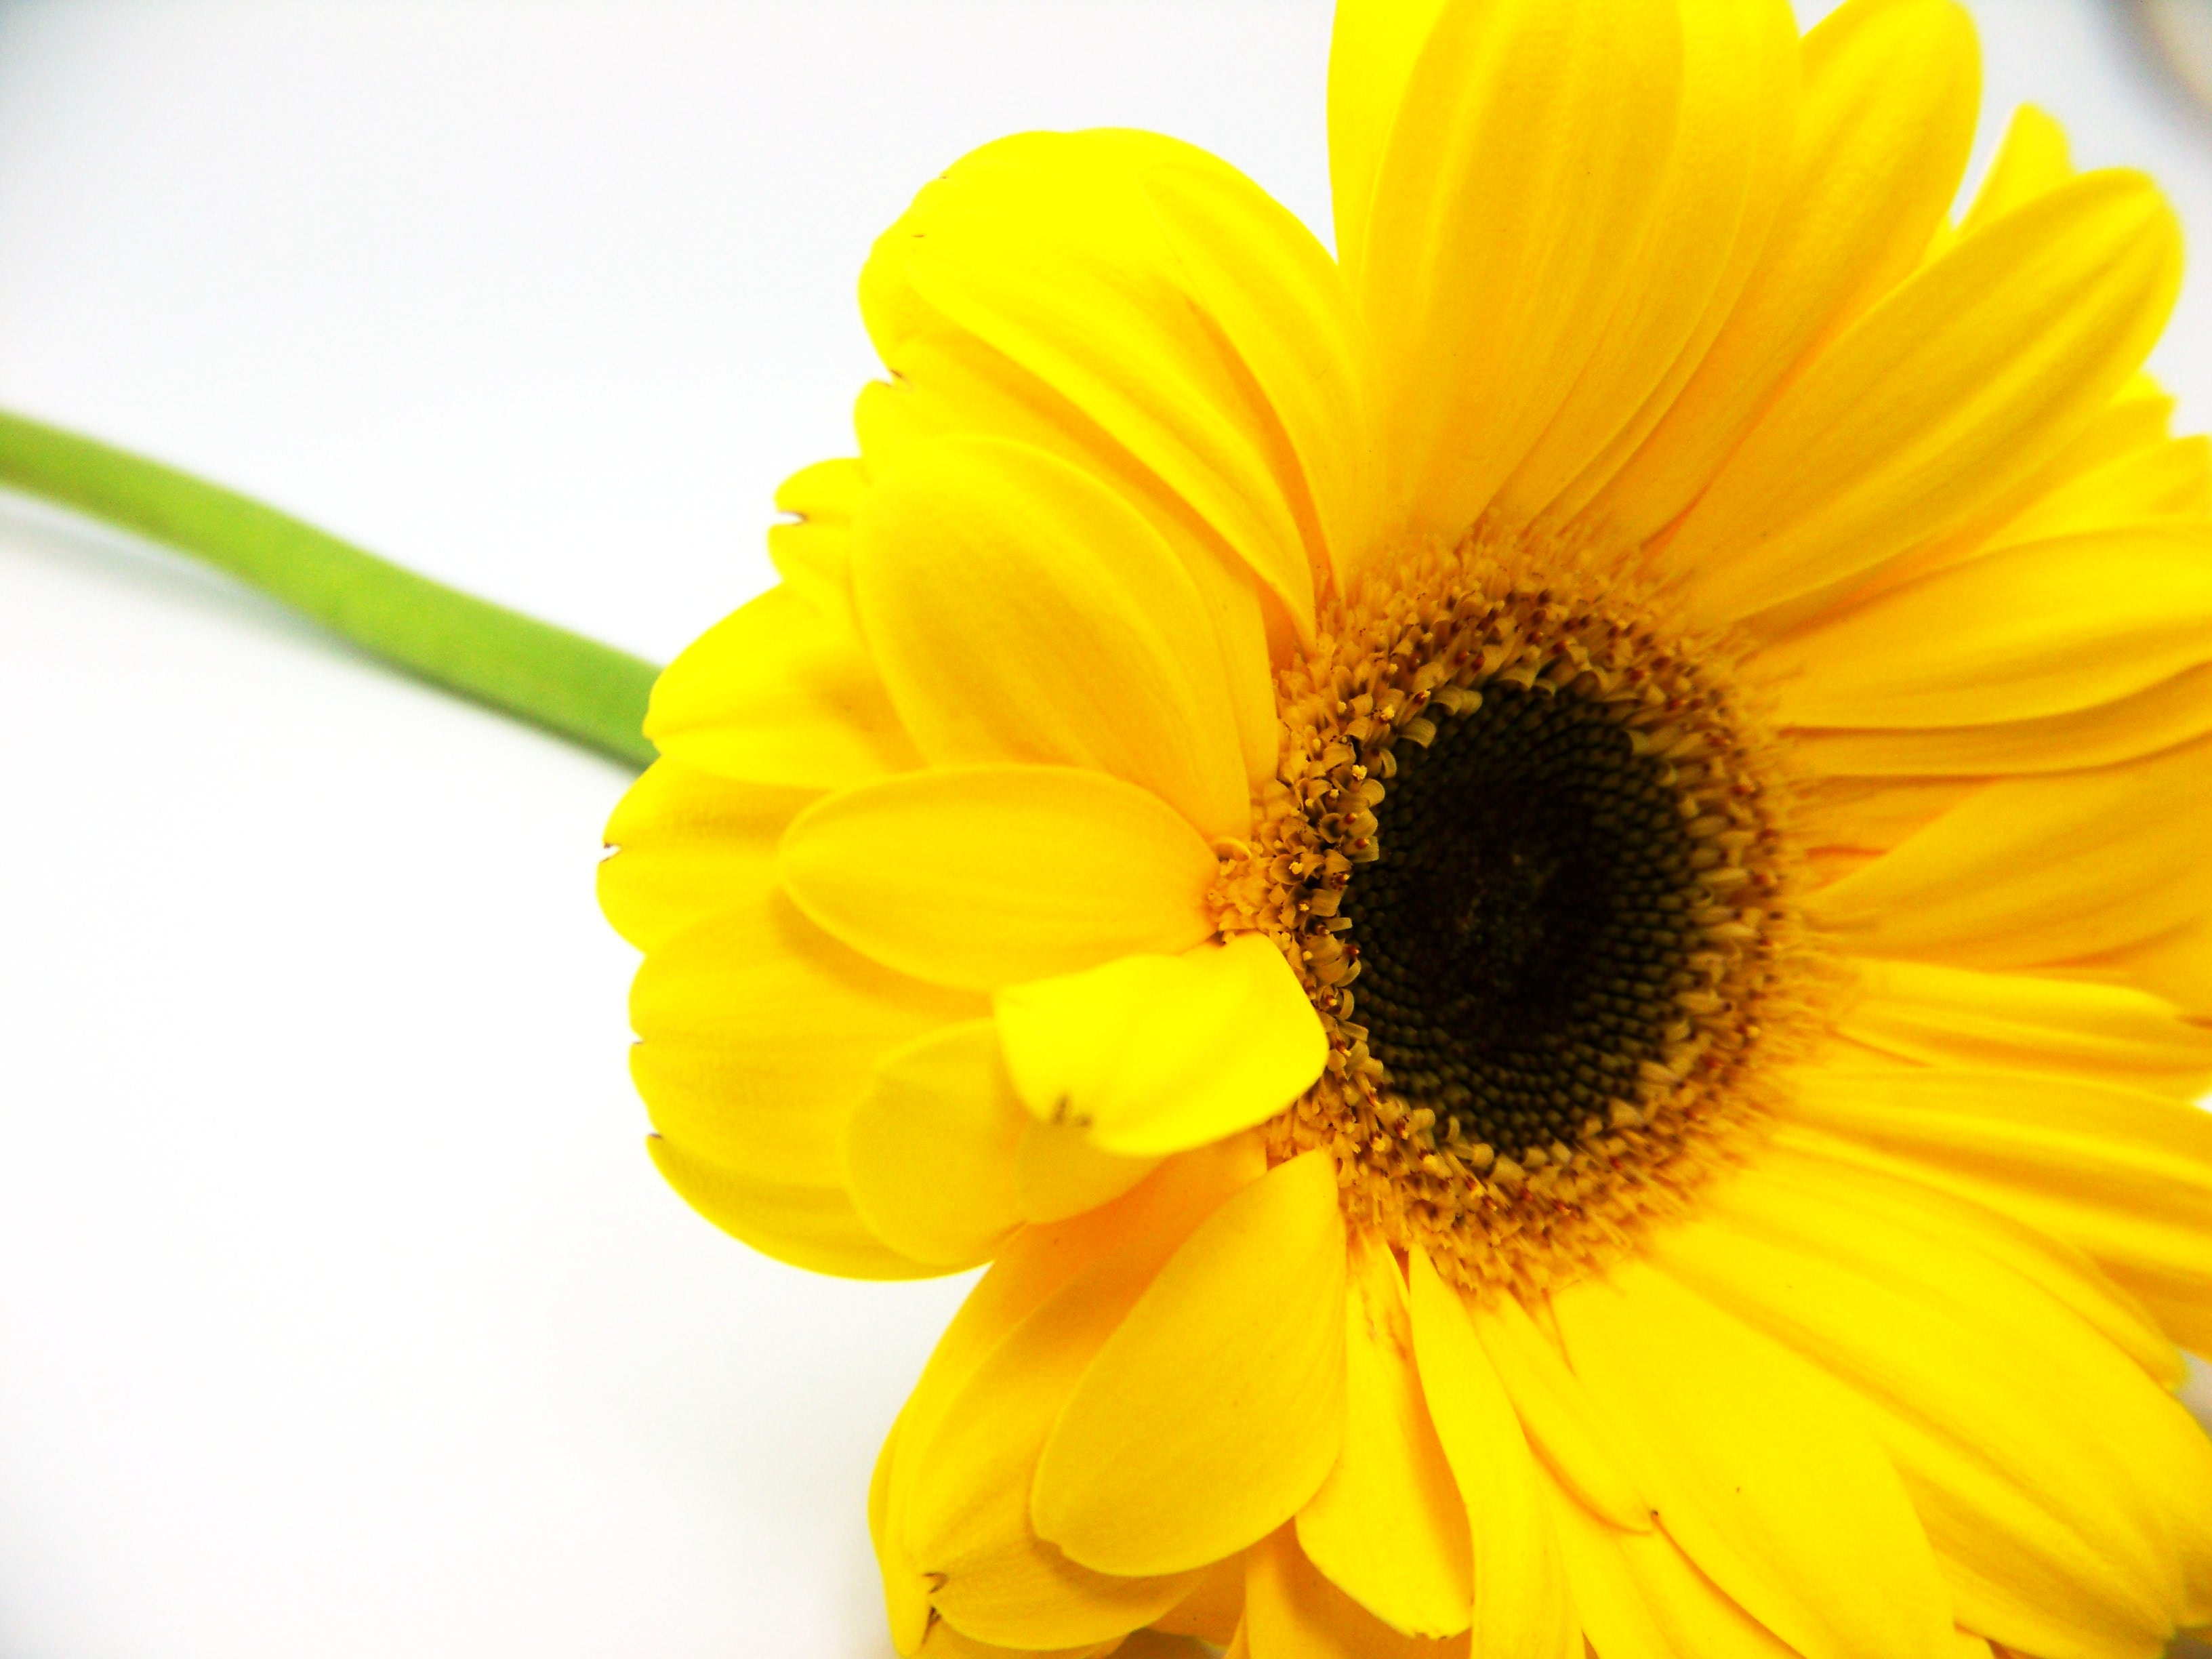 Yellow sunflower, Agriculture, Season, Natural, Nature, HQ Photo